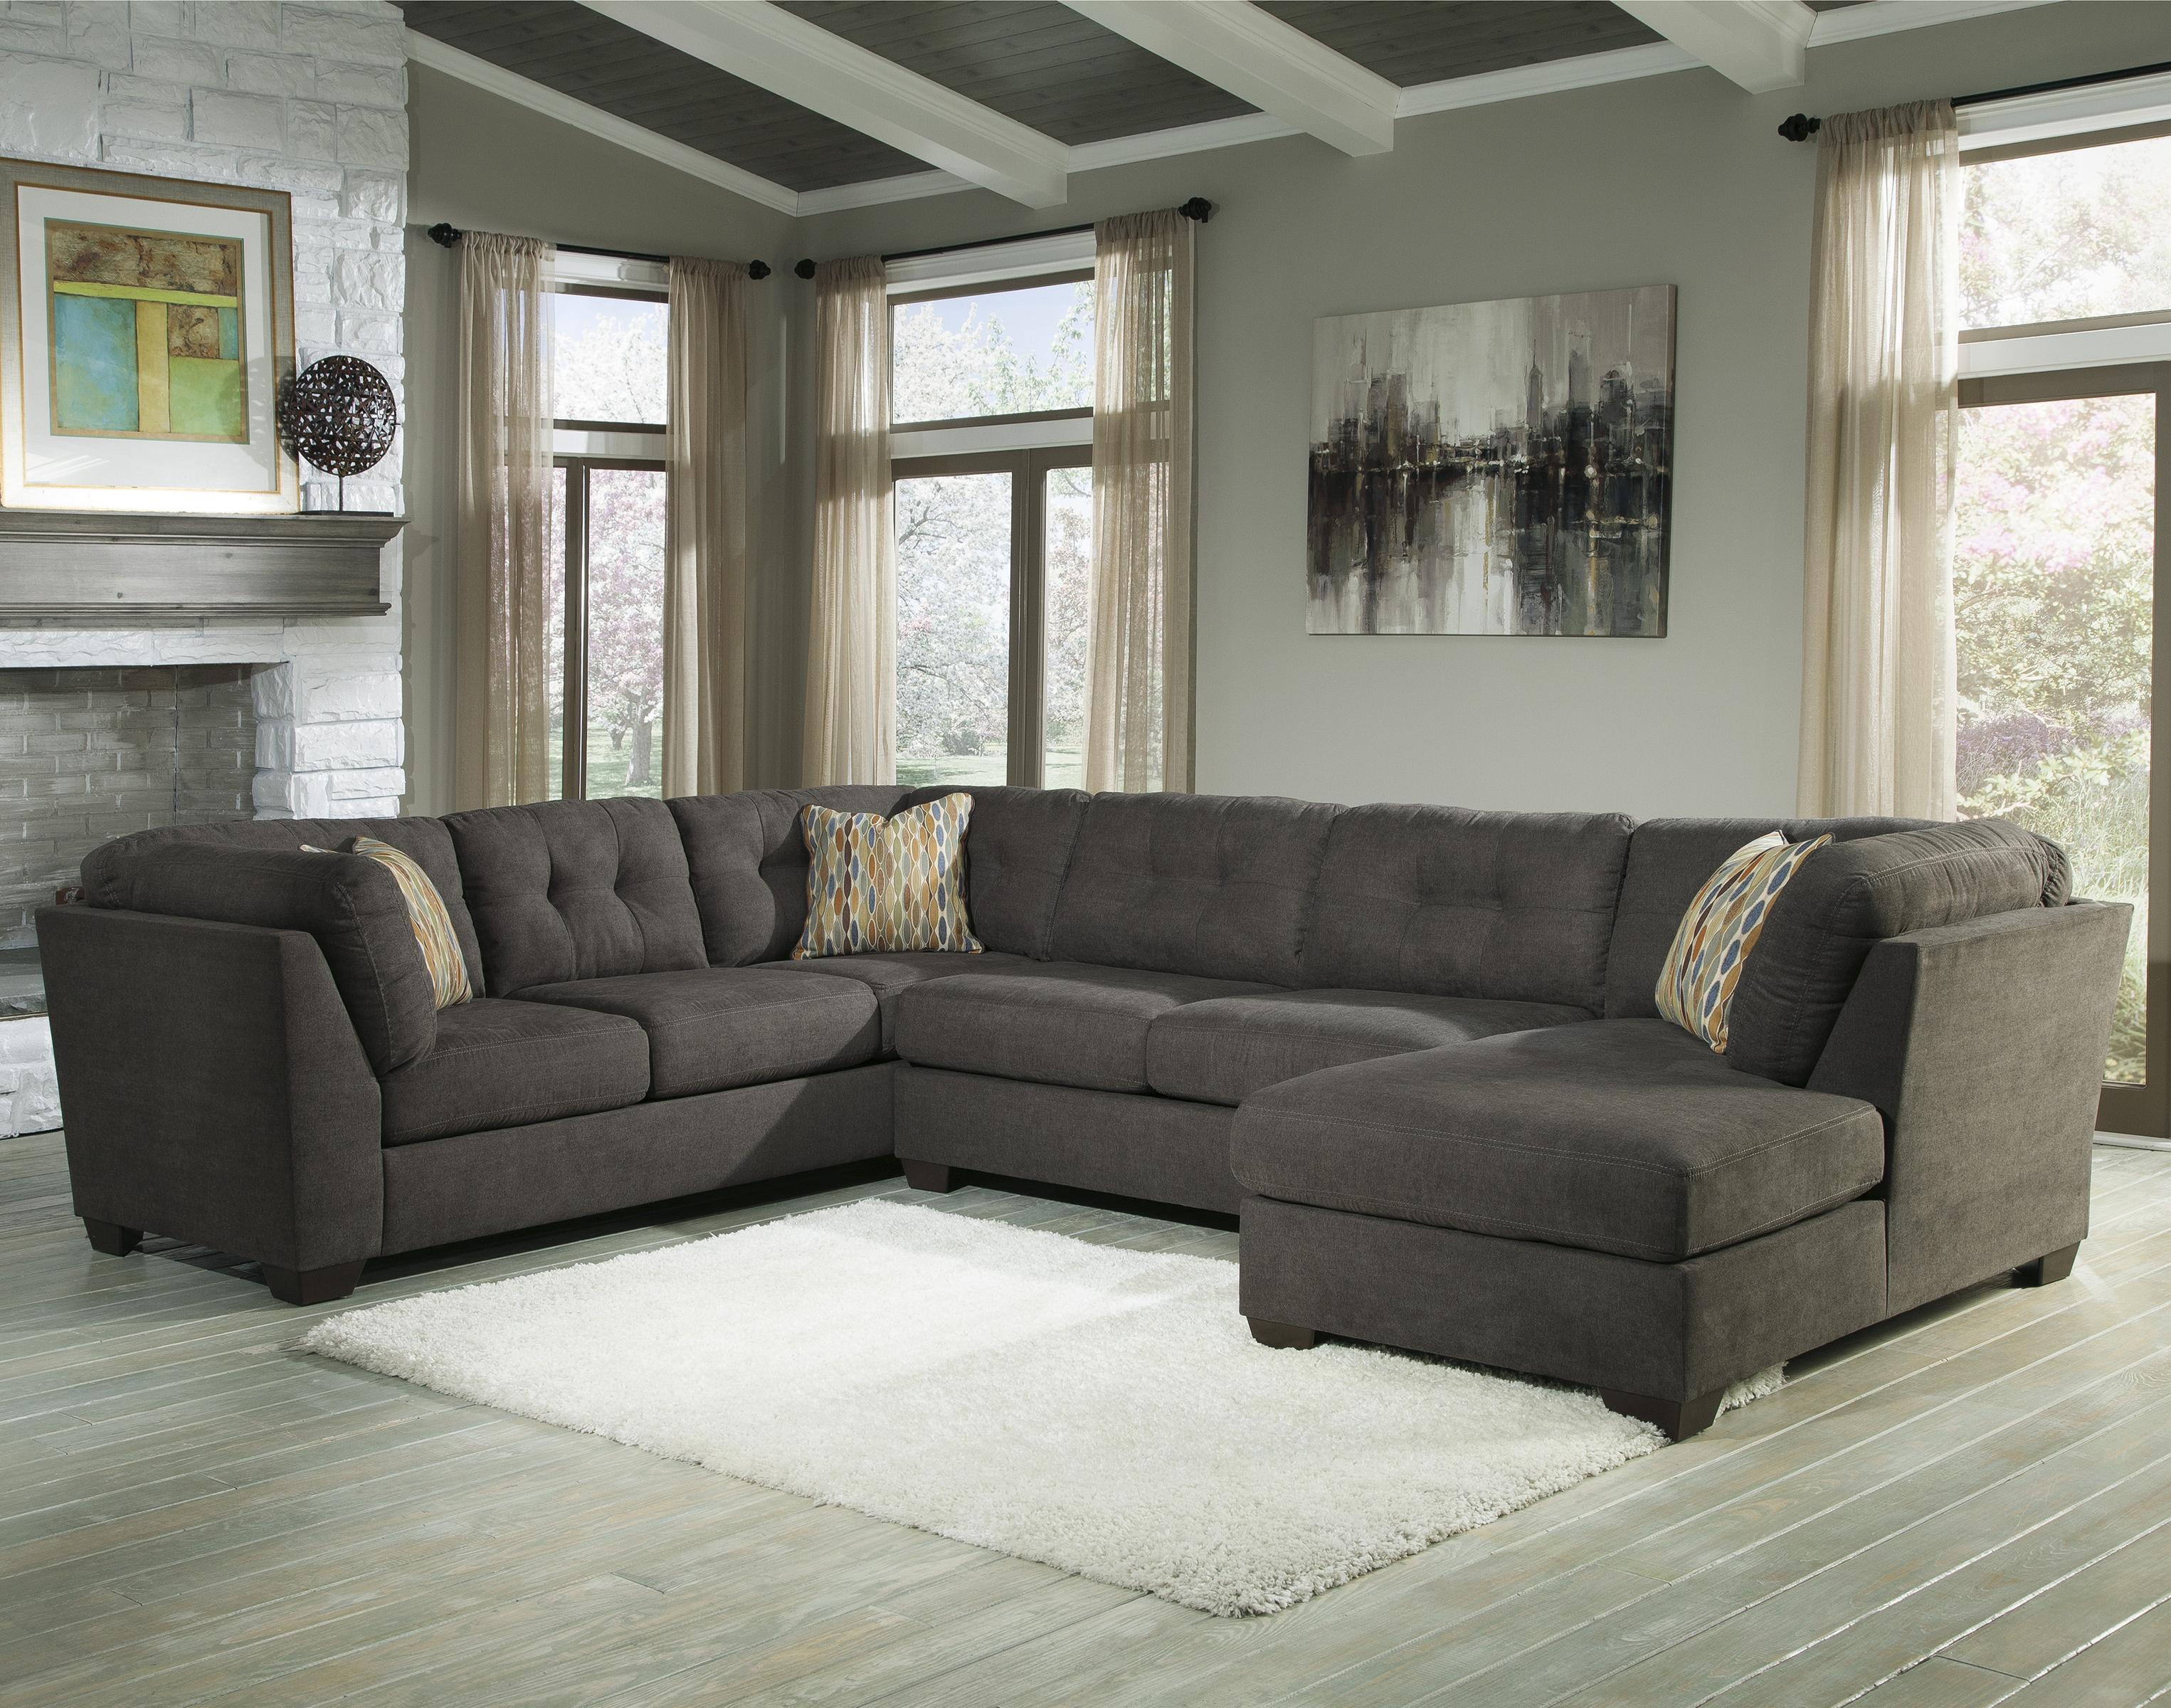 3 Piece Modular Sectional With Right Chaise By Benchcraft Wolf And